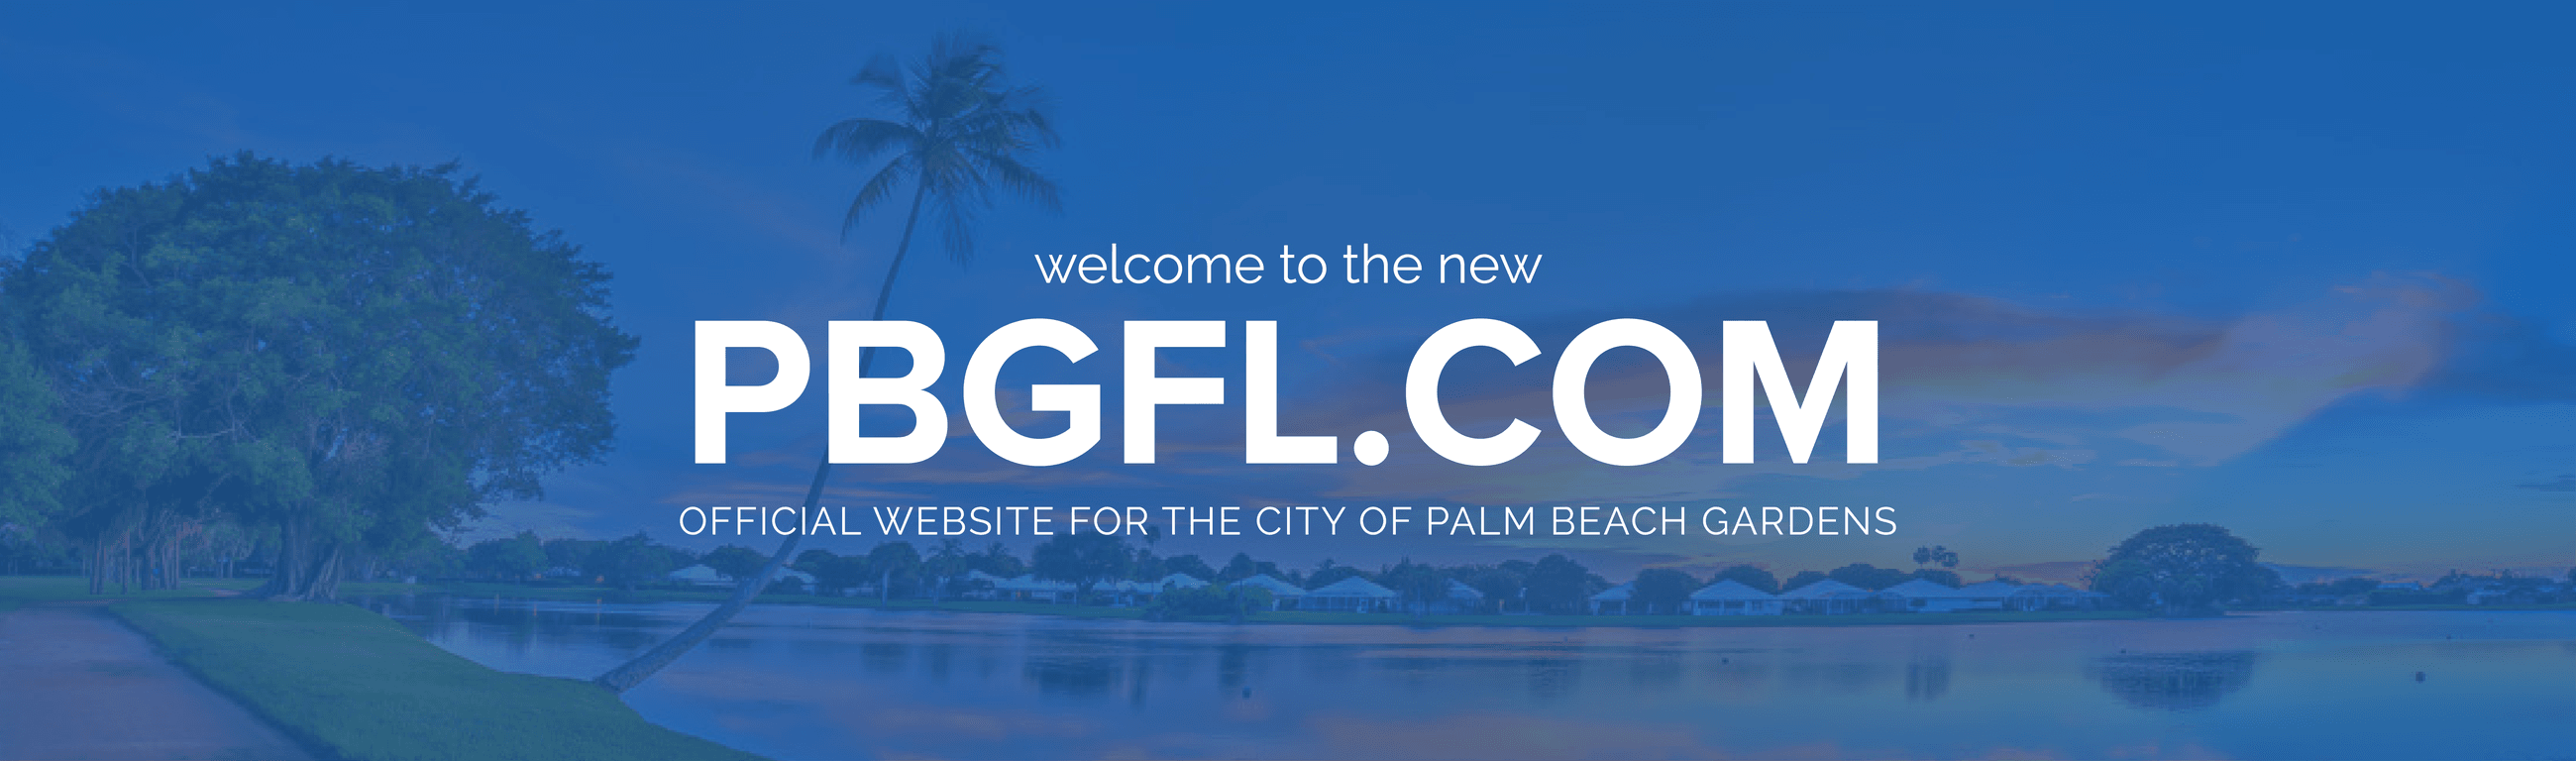 Welcome to the new pbgfl.com. Official website for the City of Palm Beach Gardens.